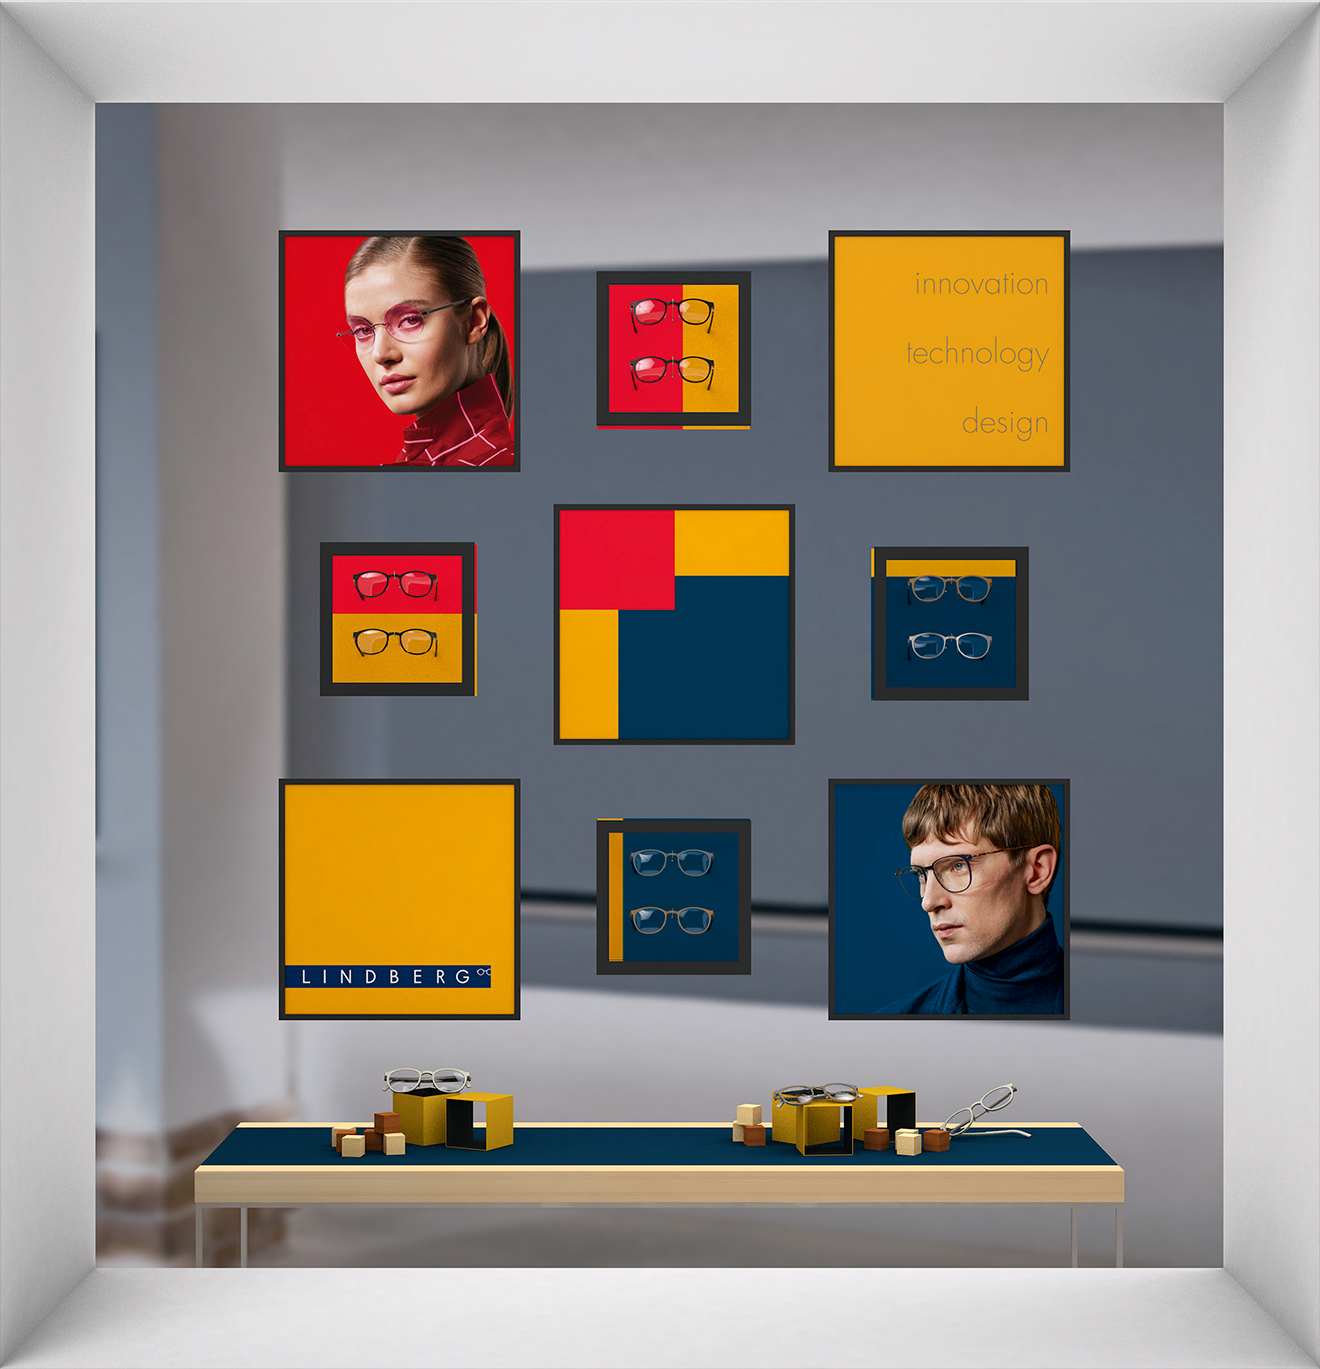 Red Dot honors Interior Design by LINDBERG